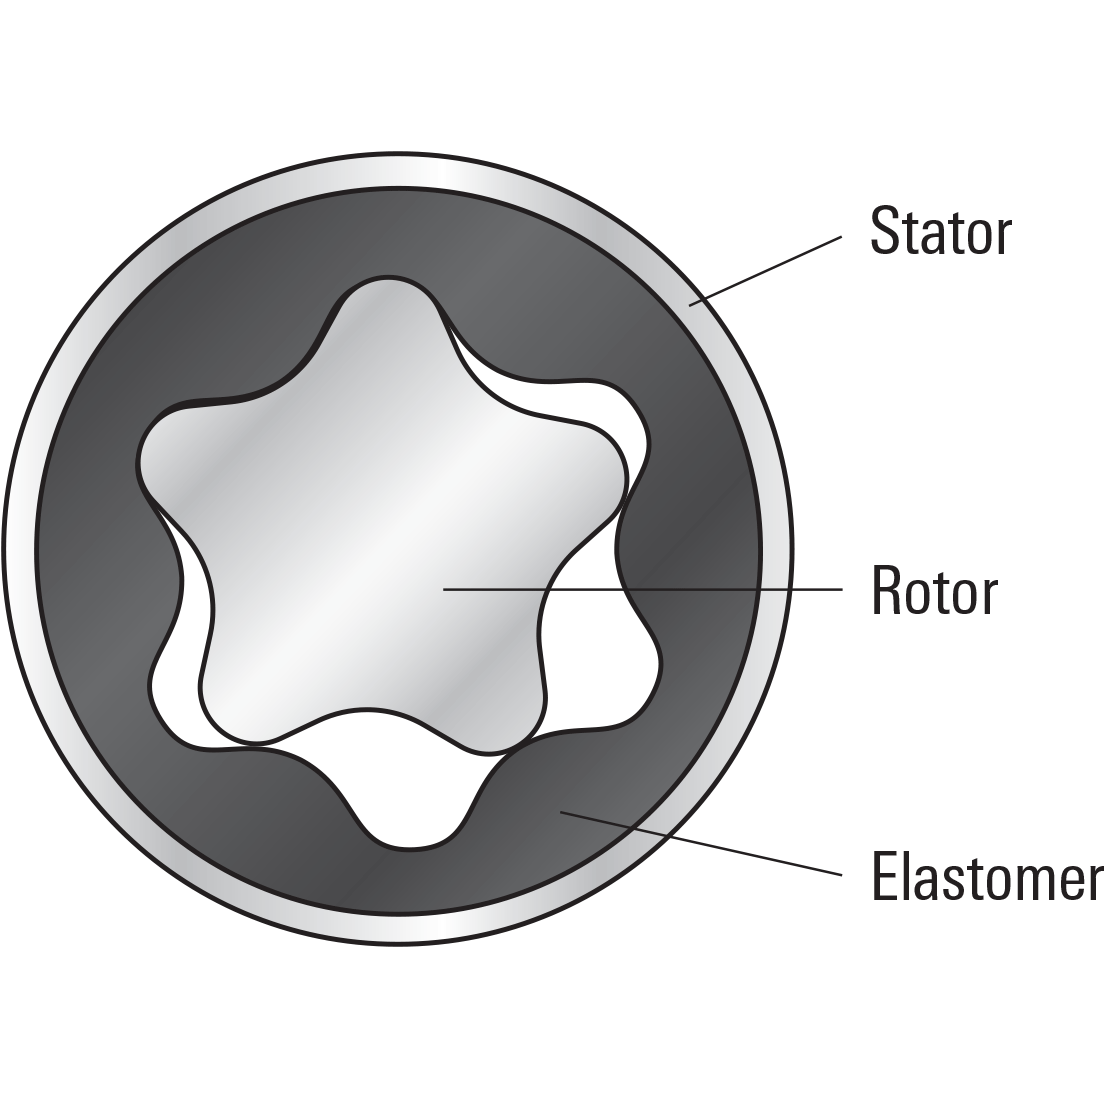 Diagram highlighting the stator, rotor, and elastomer of a PowerPak motor